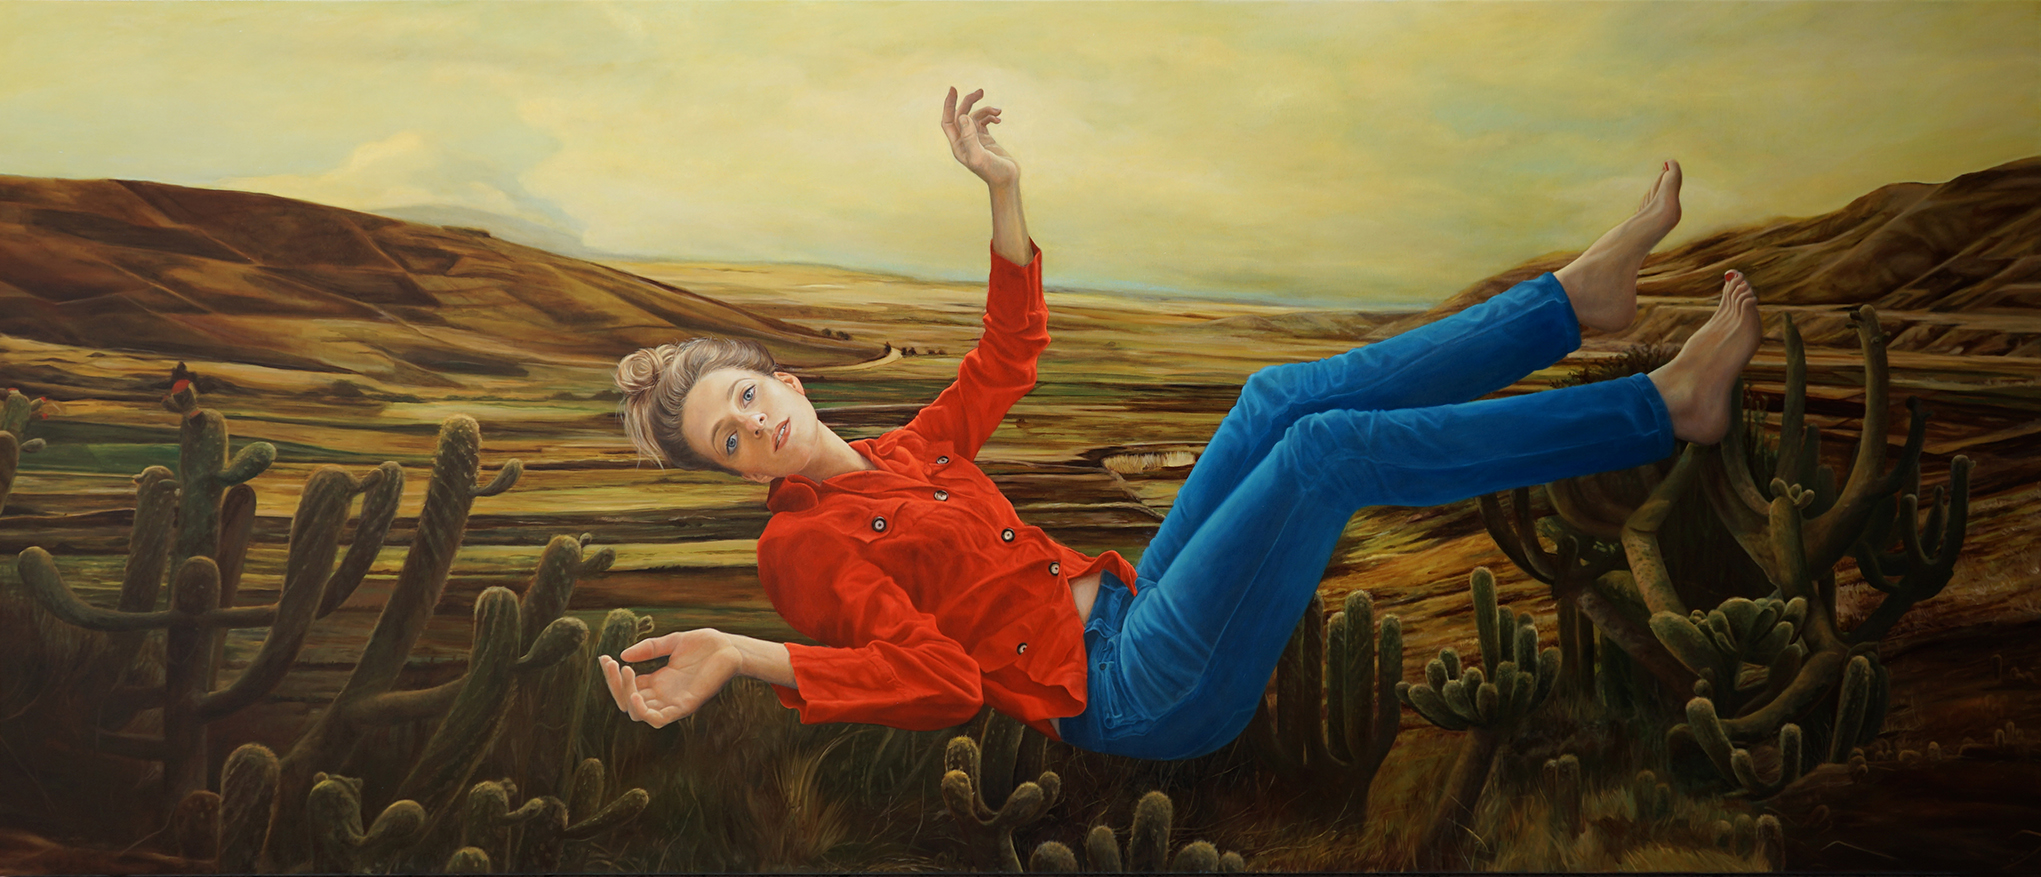 The harvest, 260x110 cm, oil on canvas, 2017